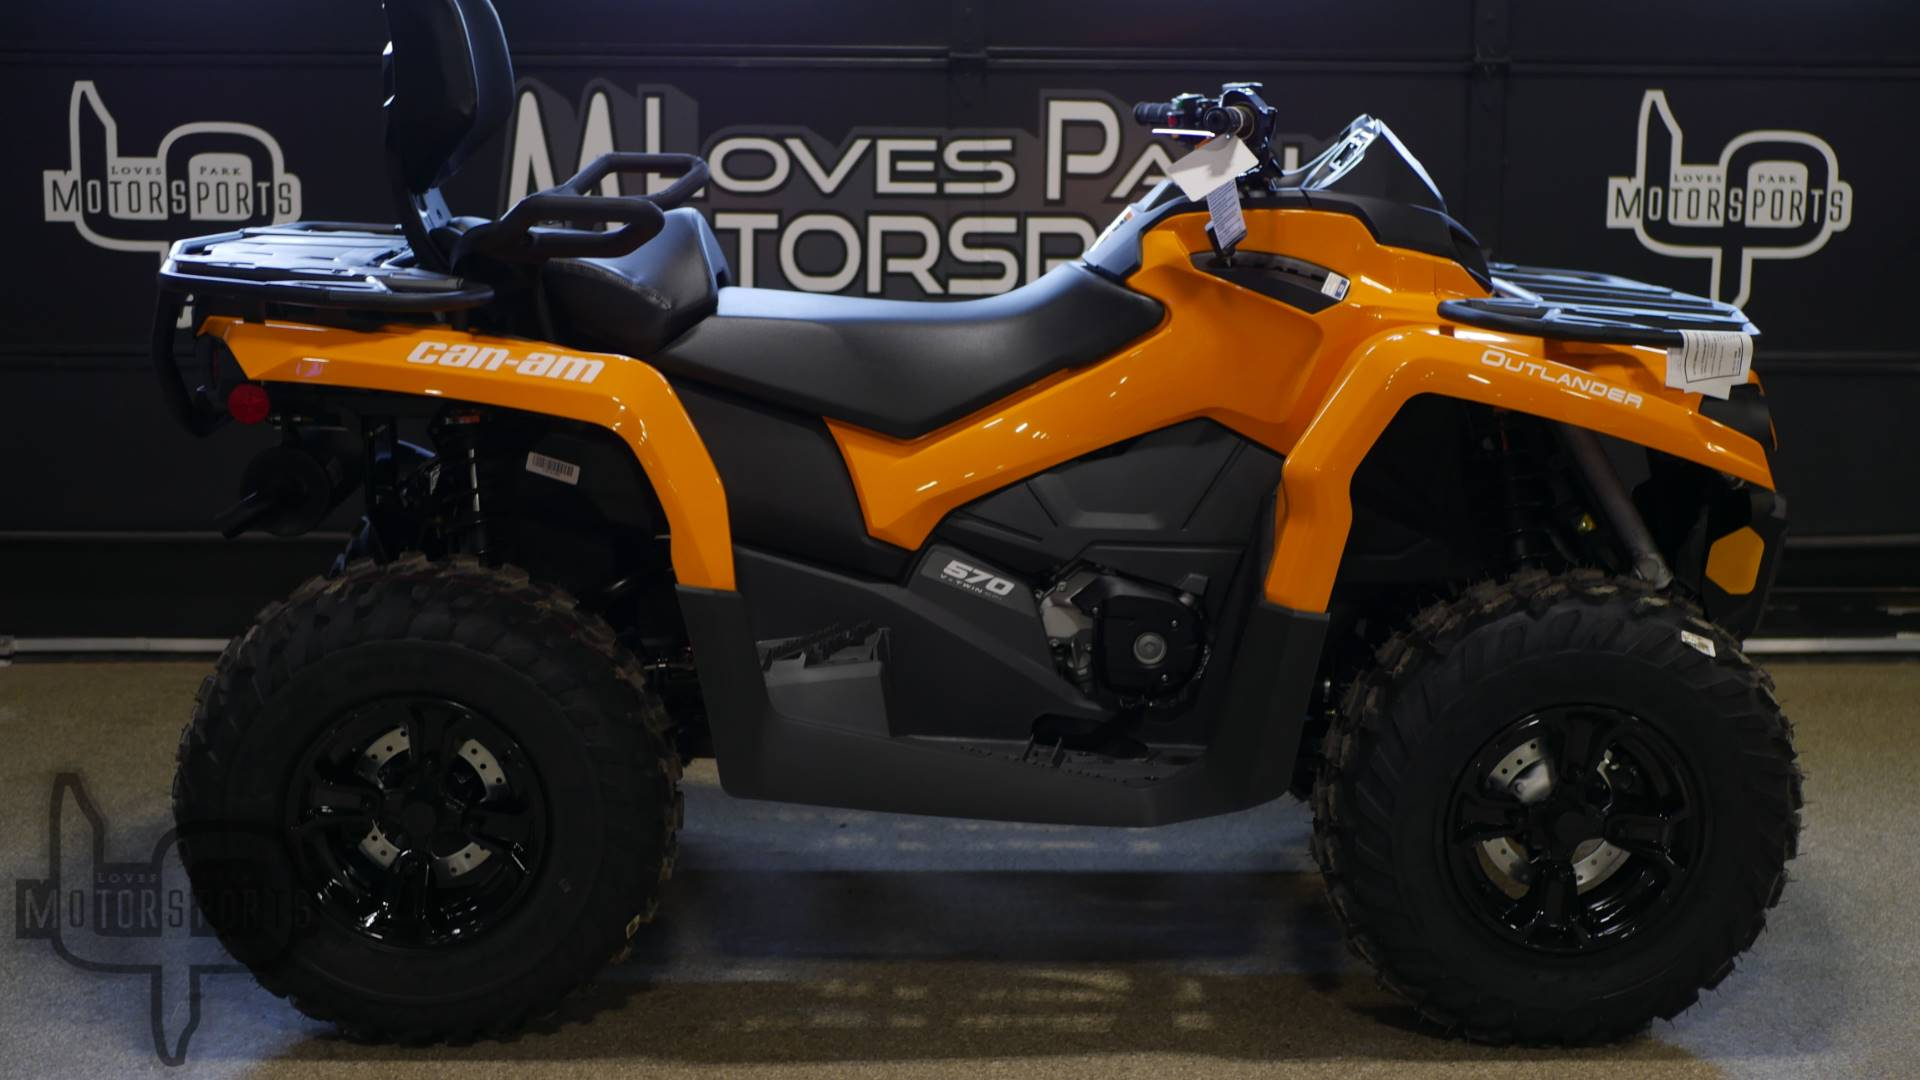 2019 Can-Am Outlander MAX DPS 570 in Roscoe, Illinois - Photo 1